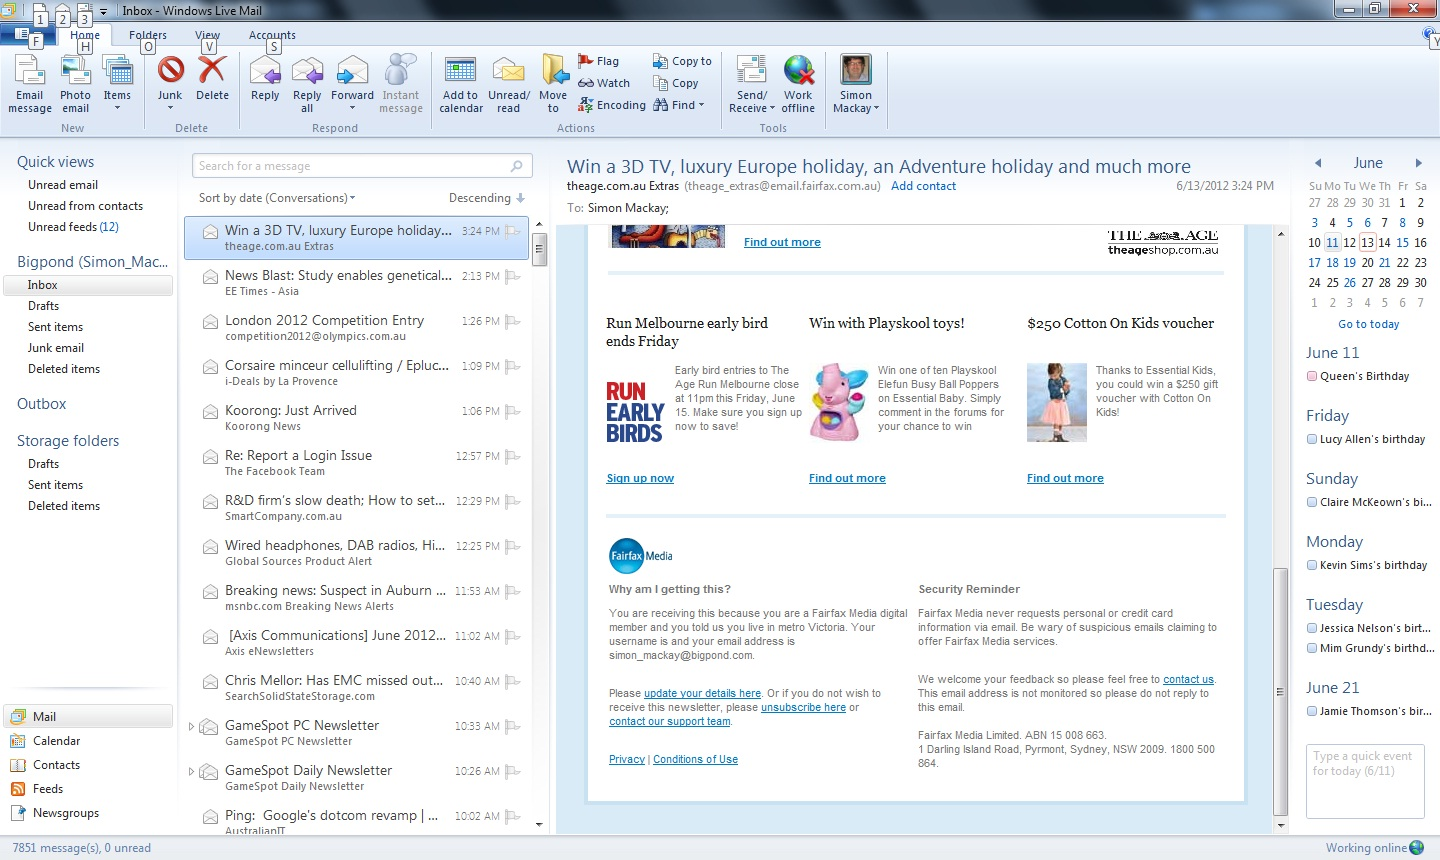 Windows Live Mail client-based email interface